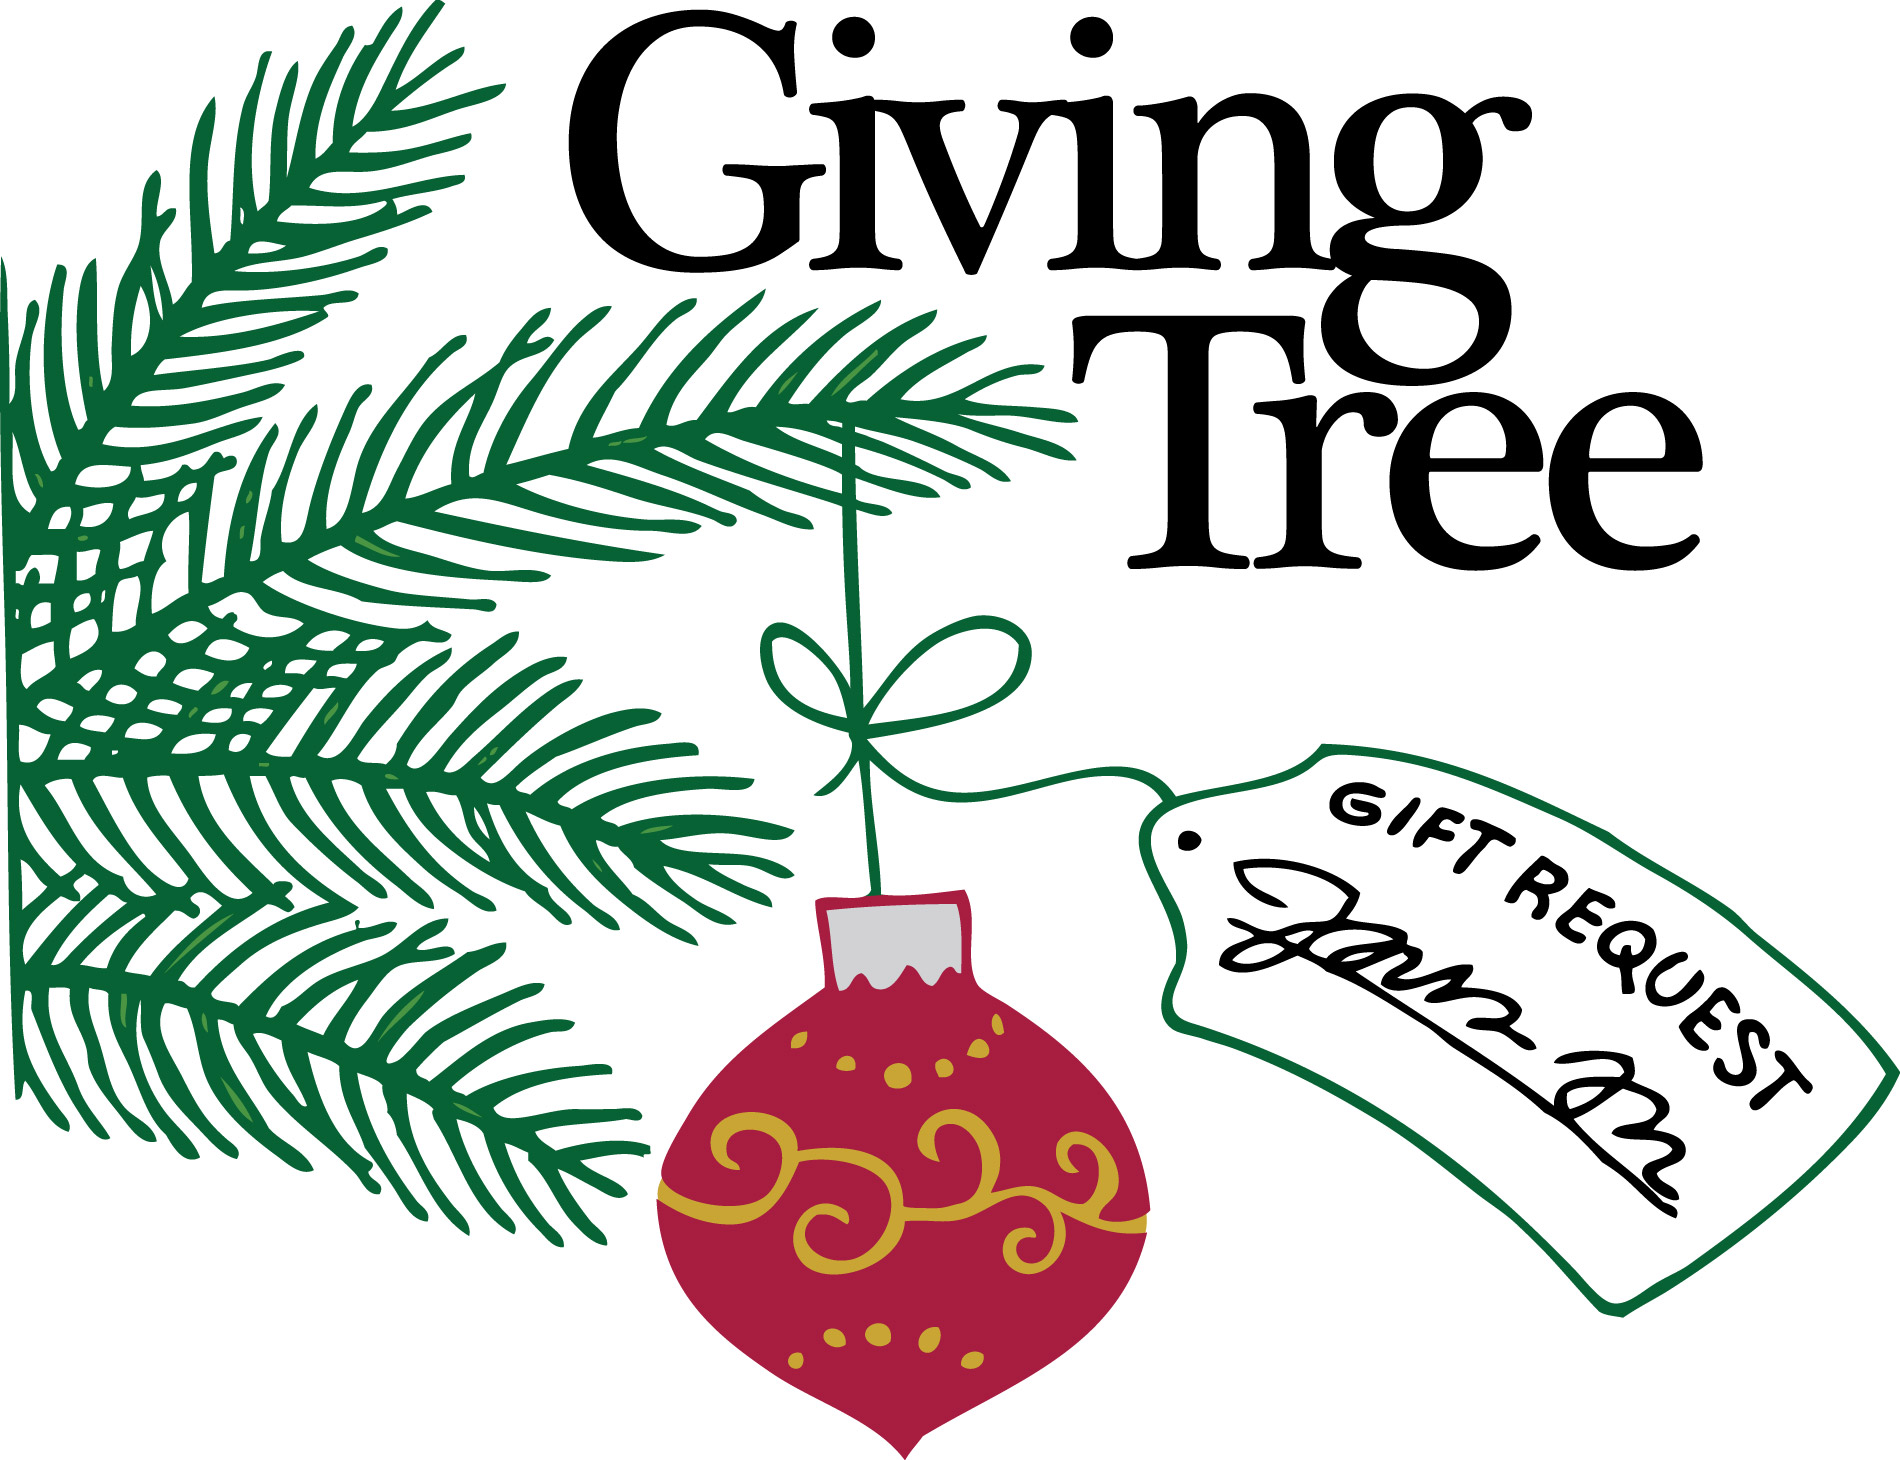 Today is the last day of the giving tree we will be collecting them all on Tuesday from all locations. Thanks to everyone that has donated already!!!